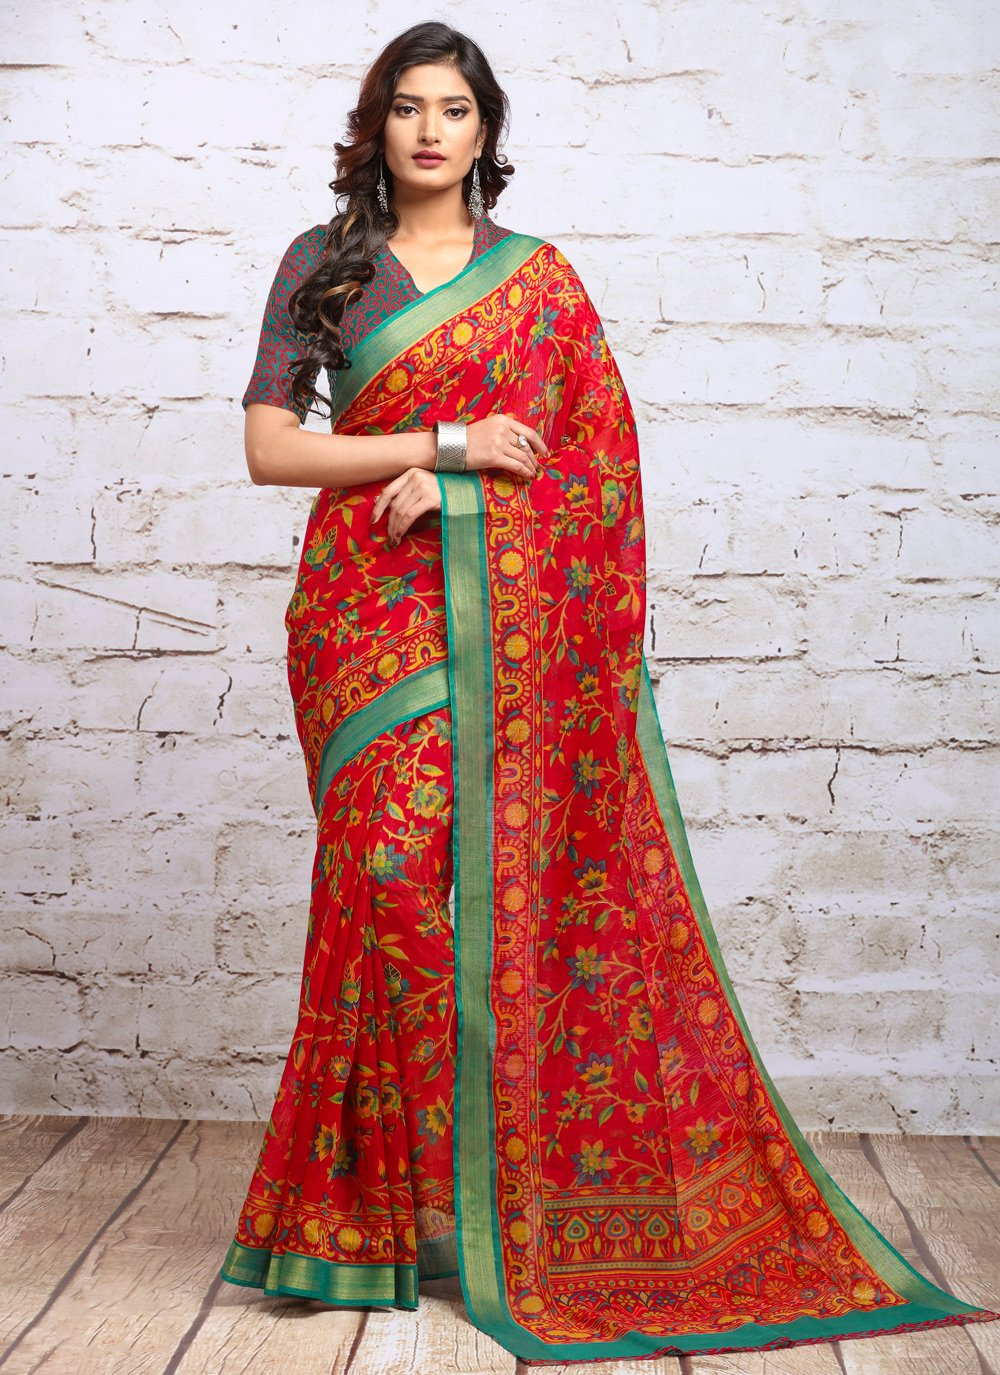 Digital Print Trendy Saree